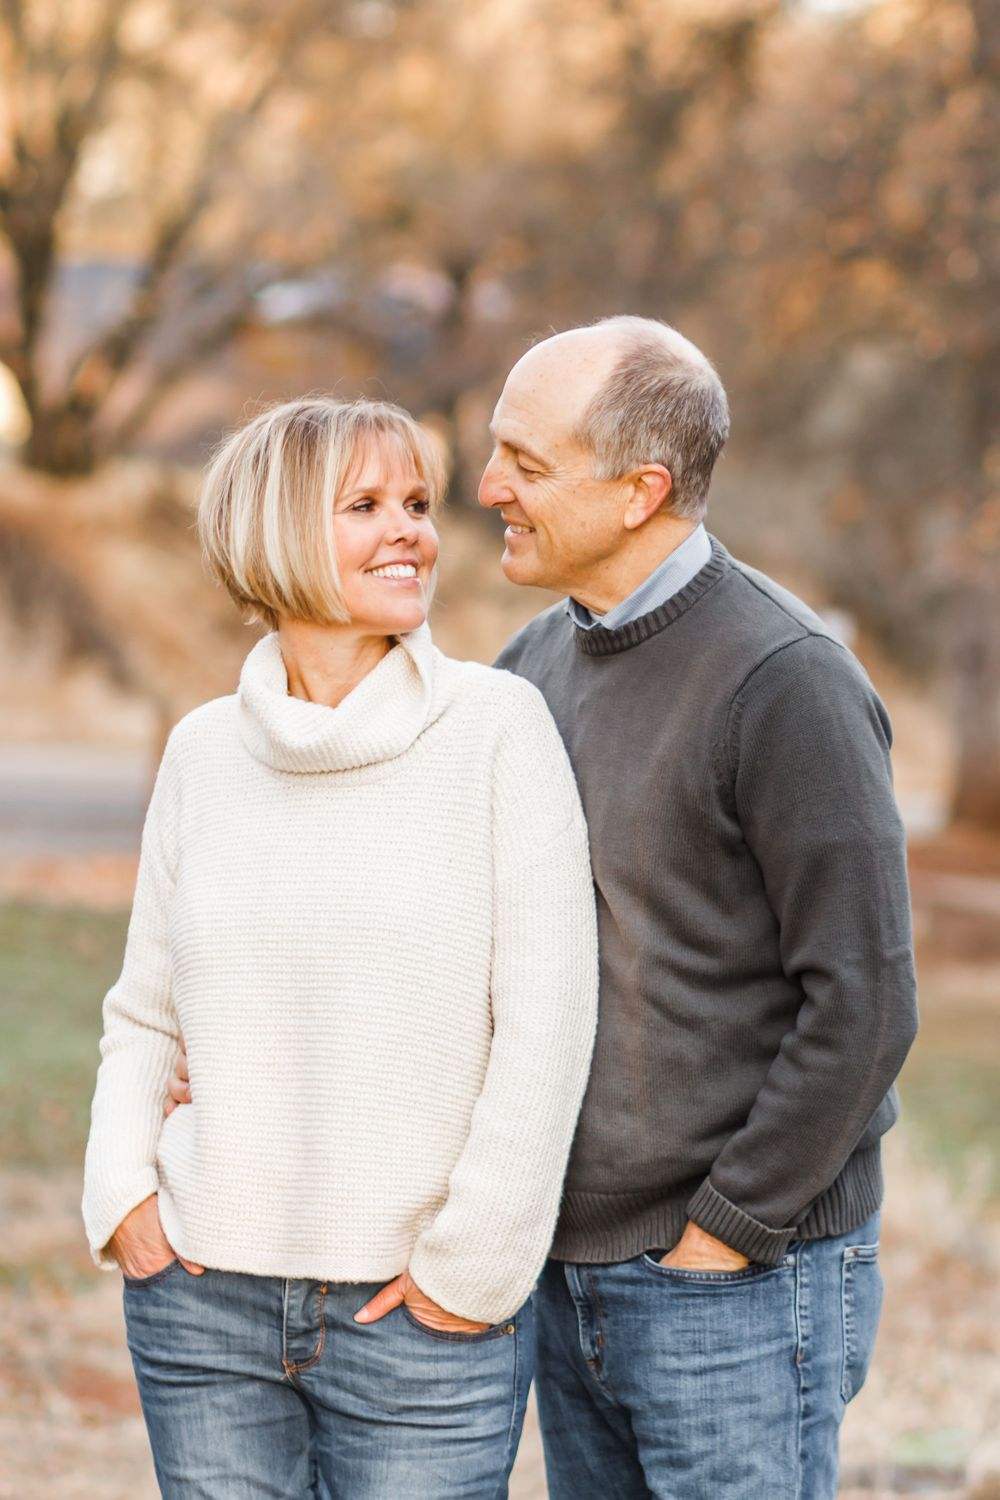 Husband and wife in sweaters turned to look at one another, smiling